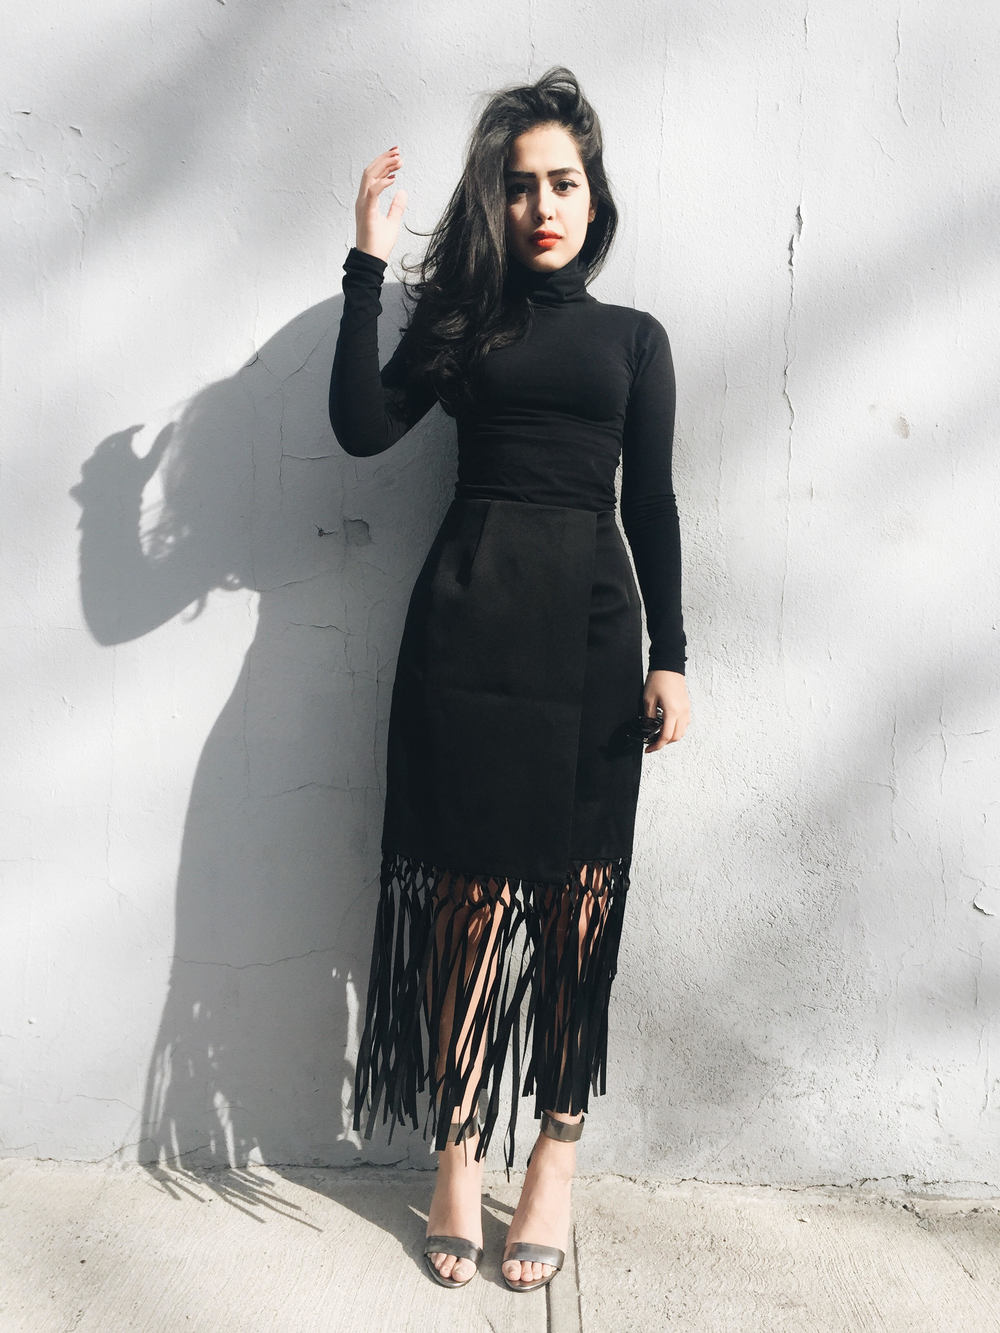 arushi khosla, arushi.co, finders keepers the label, american apparel, all black outfits, williamsburg